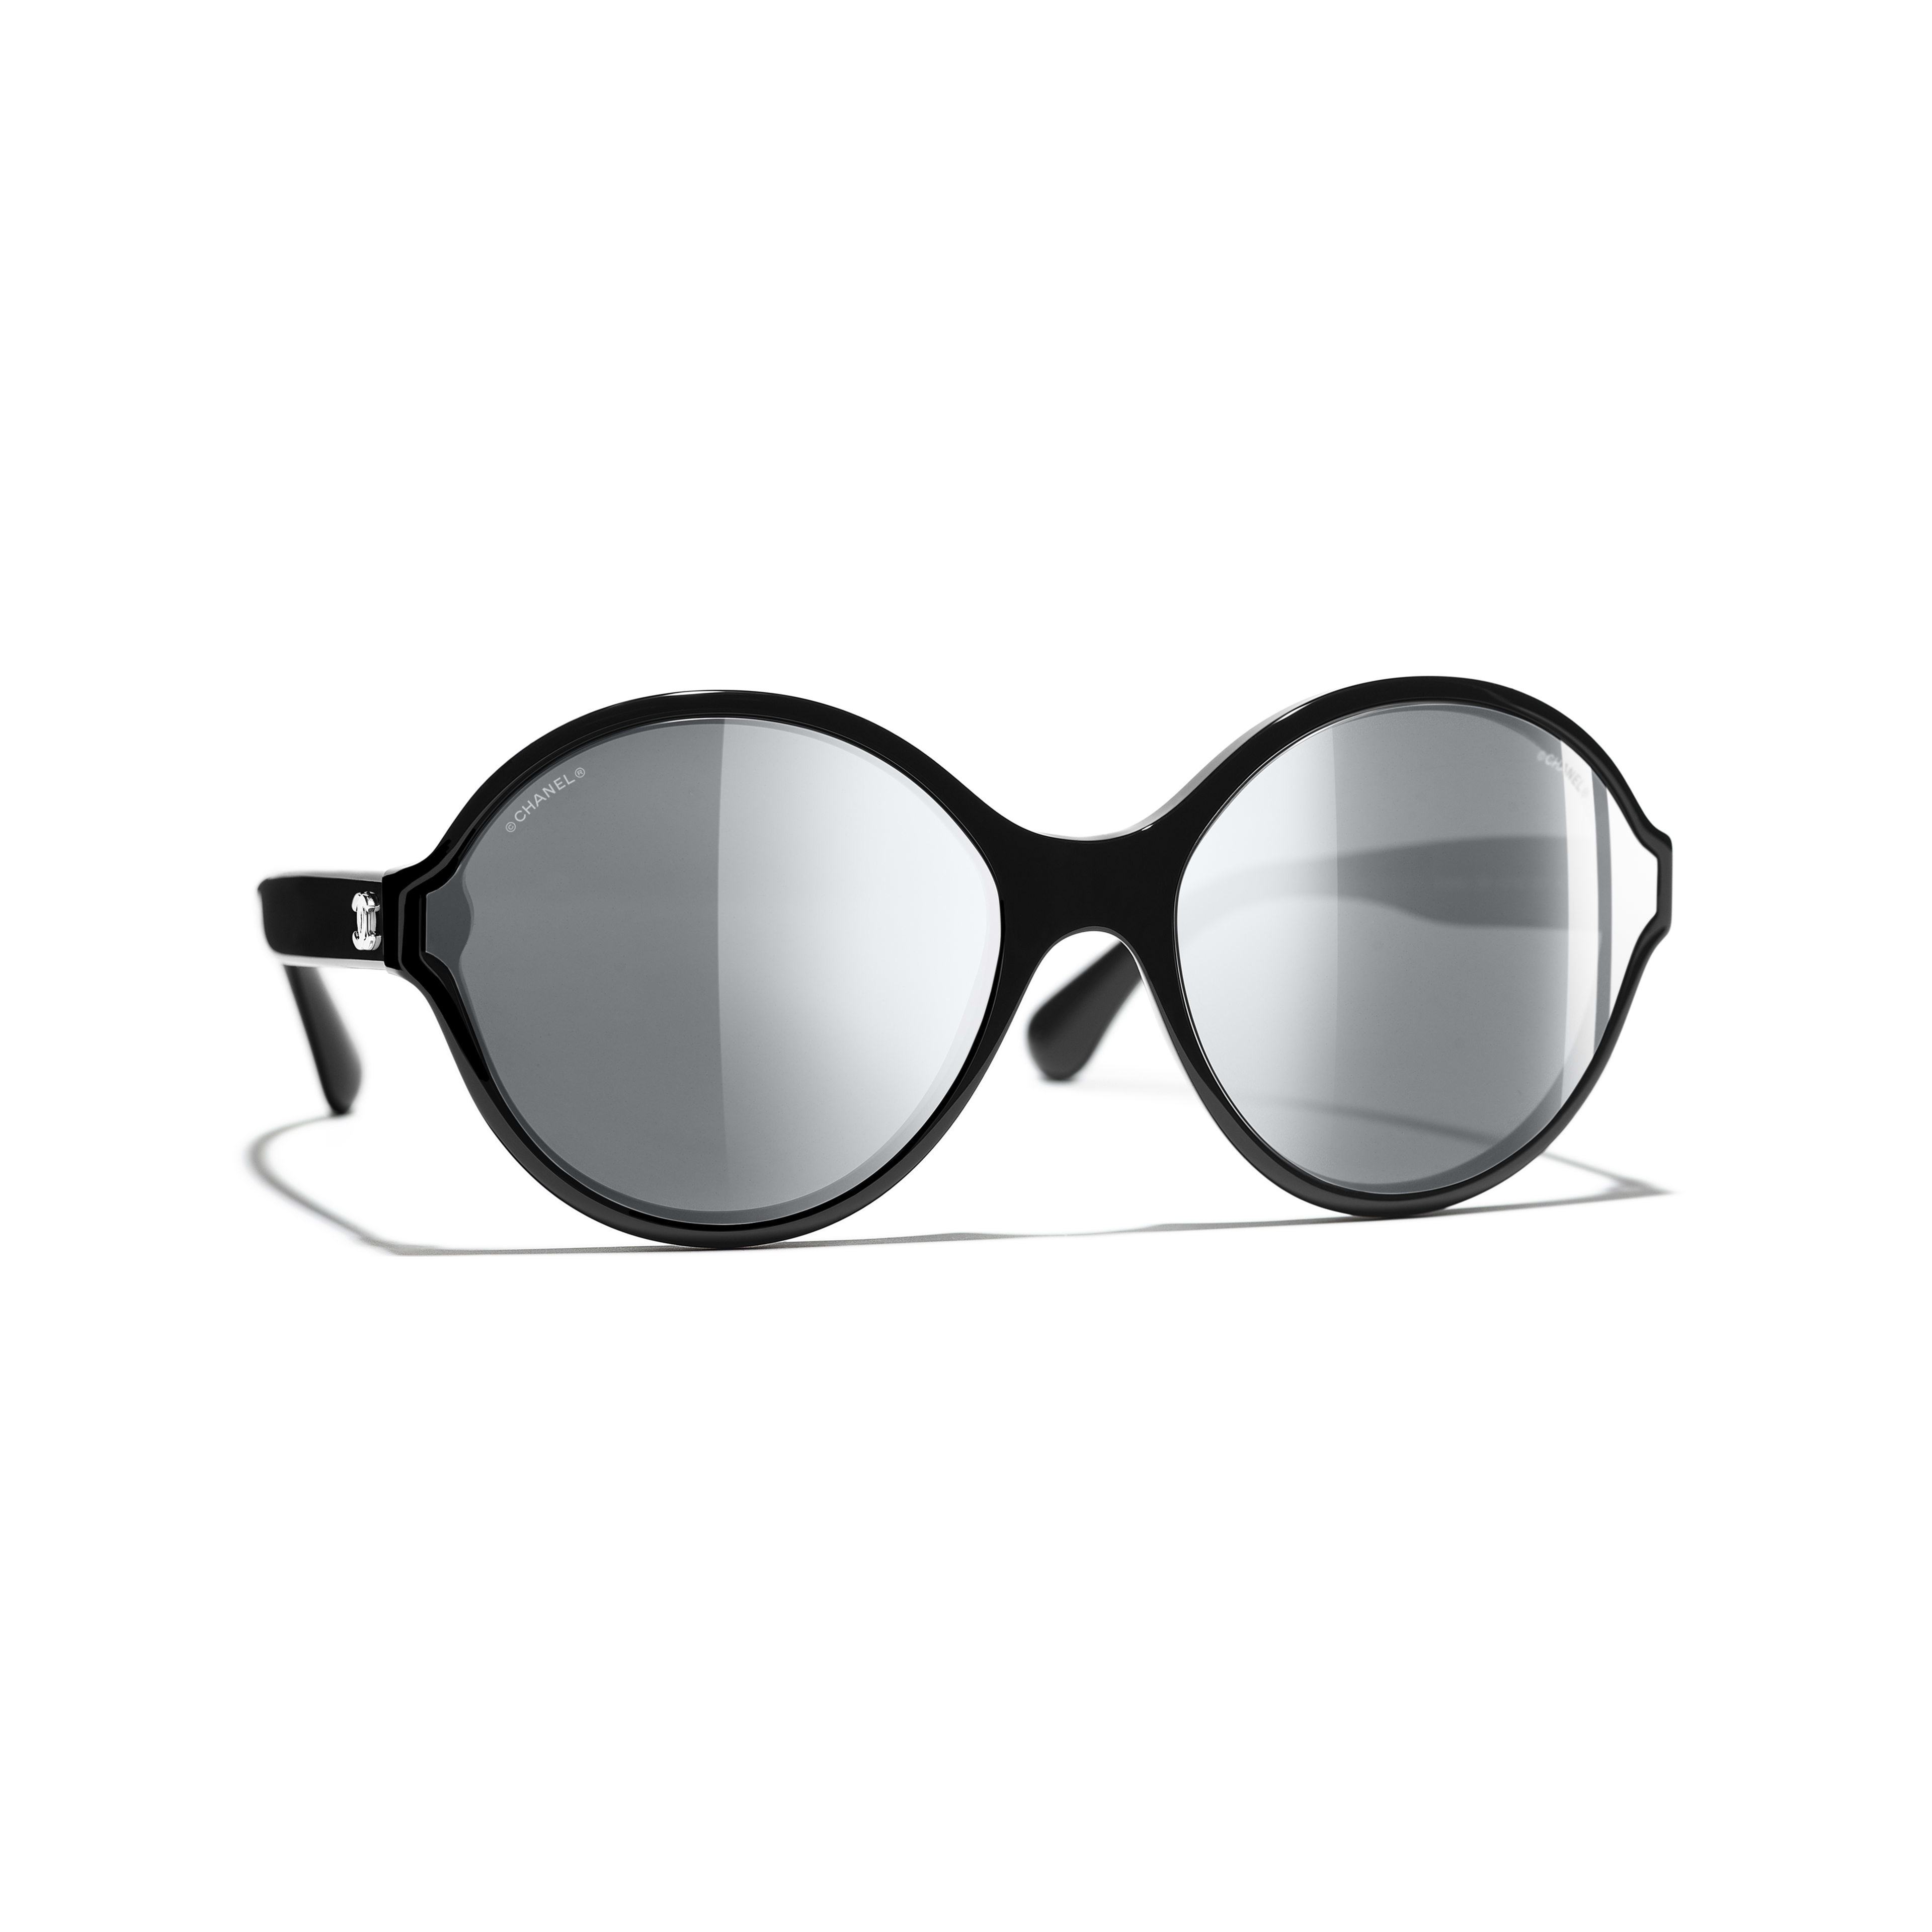 Round Sunglasses Acetate Black -                                               view 1 - see full sized version